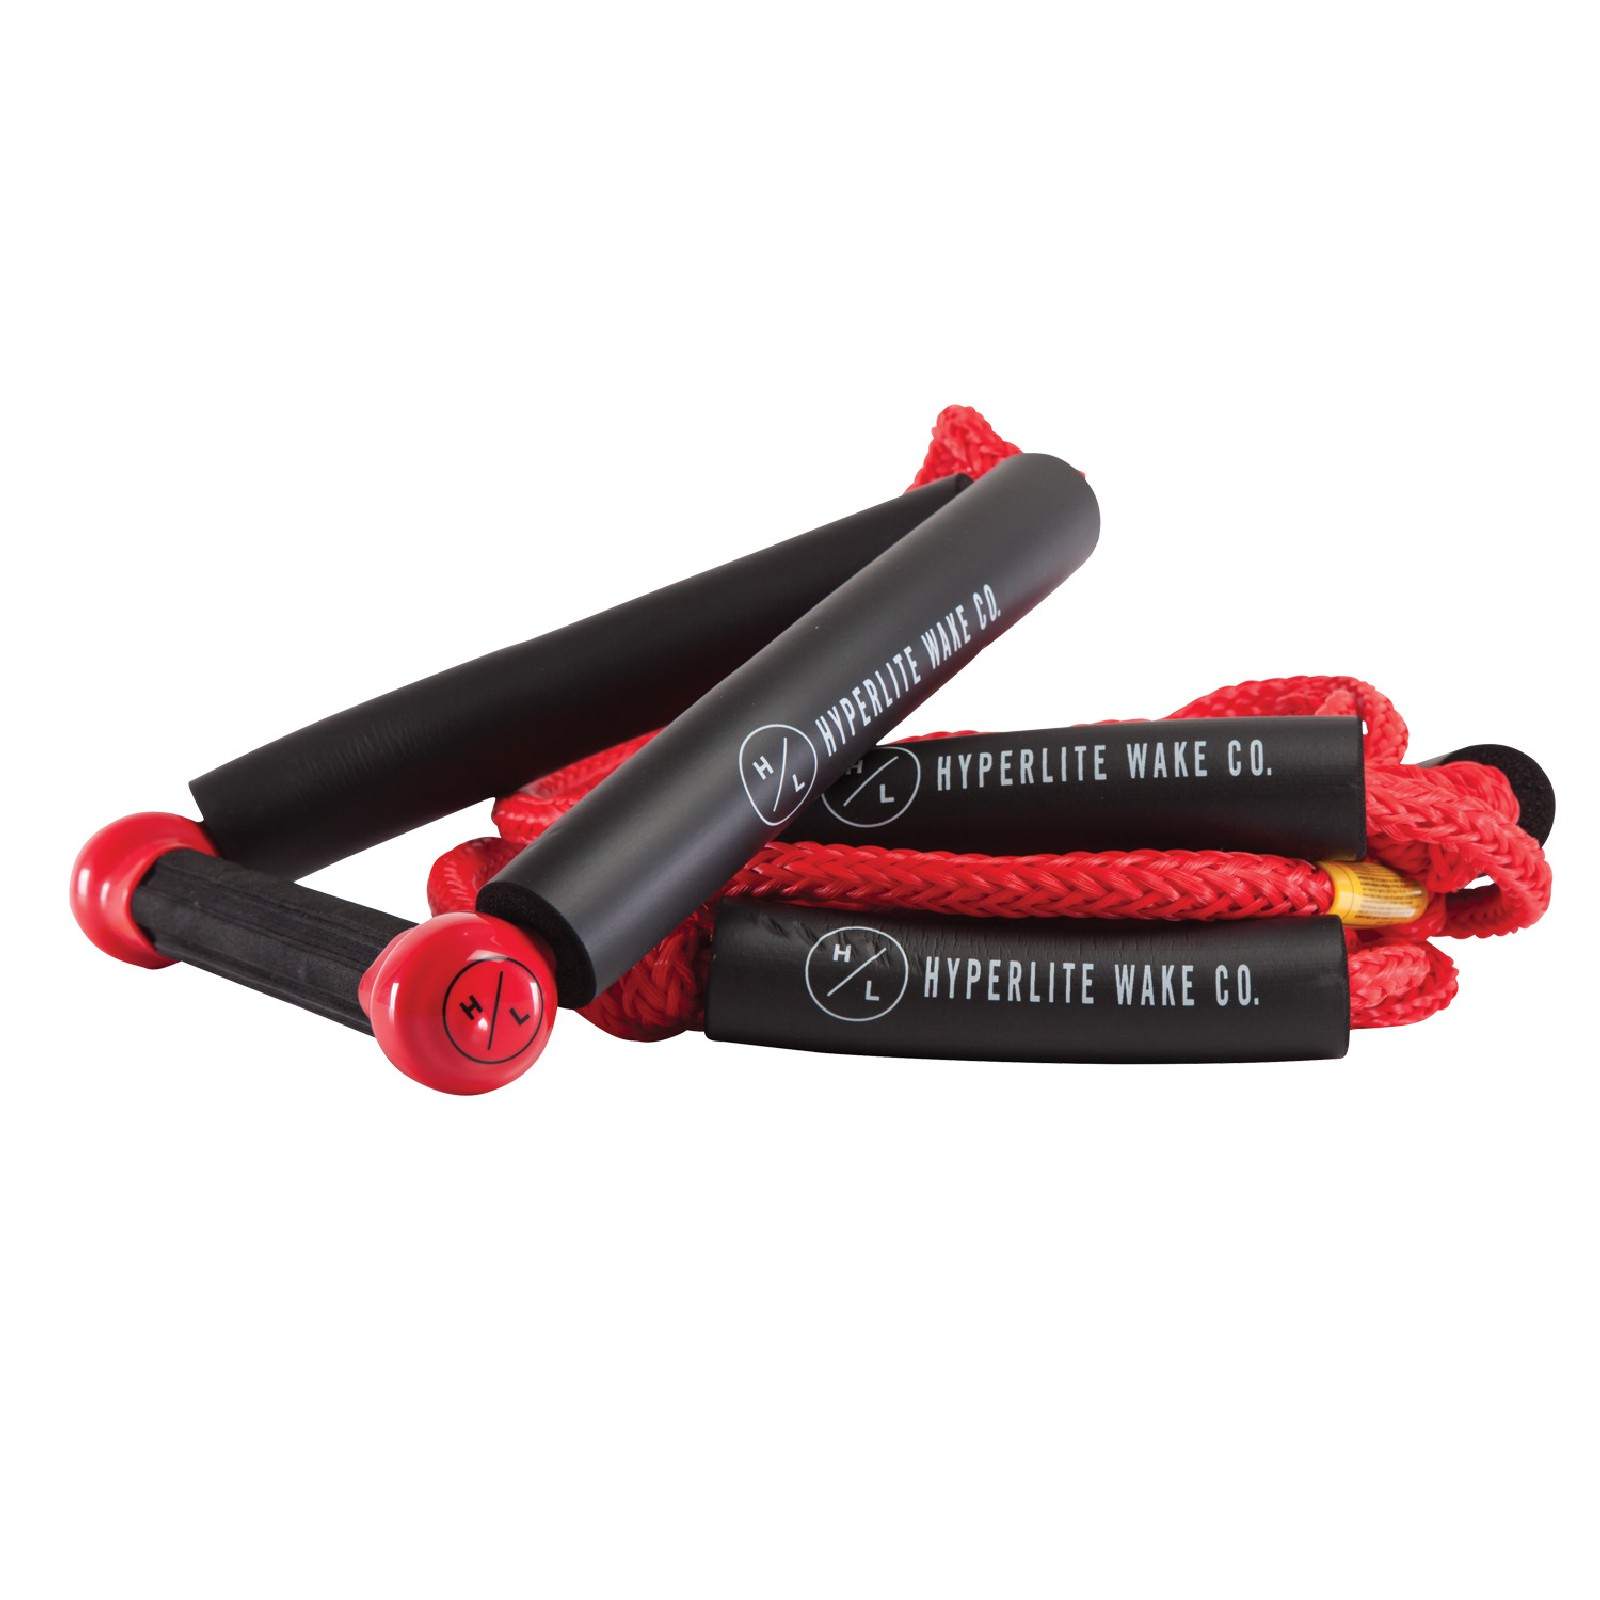 25' FT SURF ROPE W/HANDLE PACKAGE - RED HYPERLITE 2019